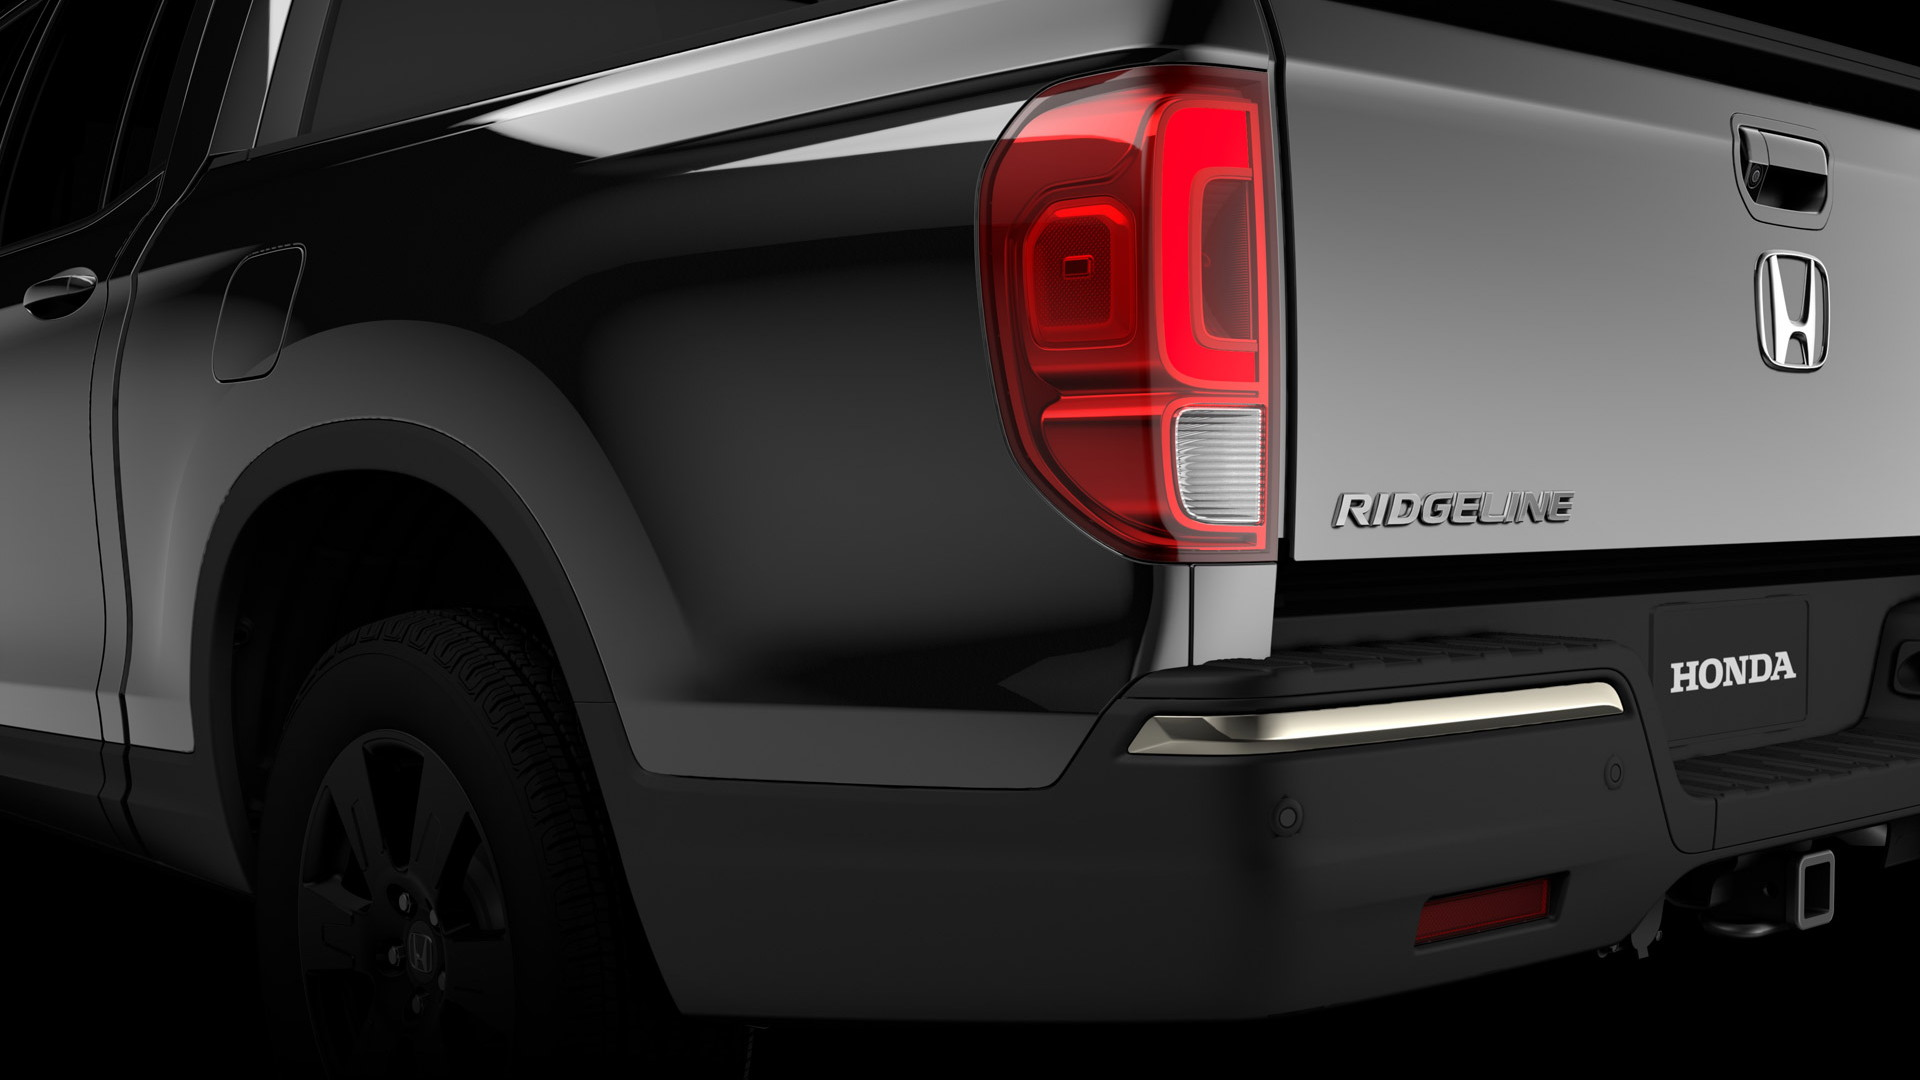 Teaser for 2017 Honda Ridgeline debuting at 2016 Detroit Auto Show